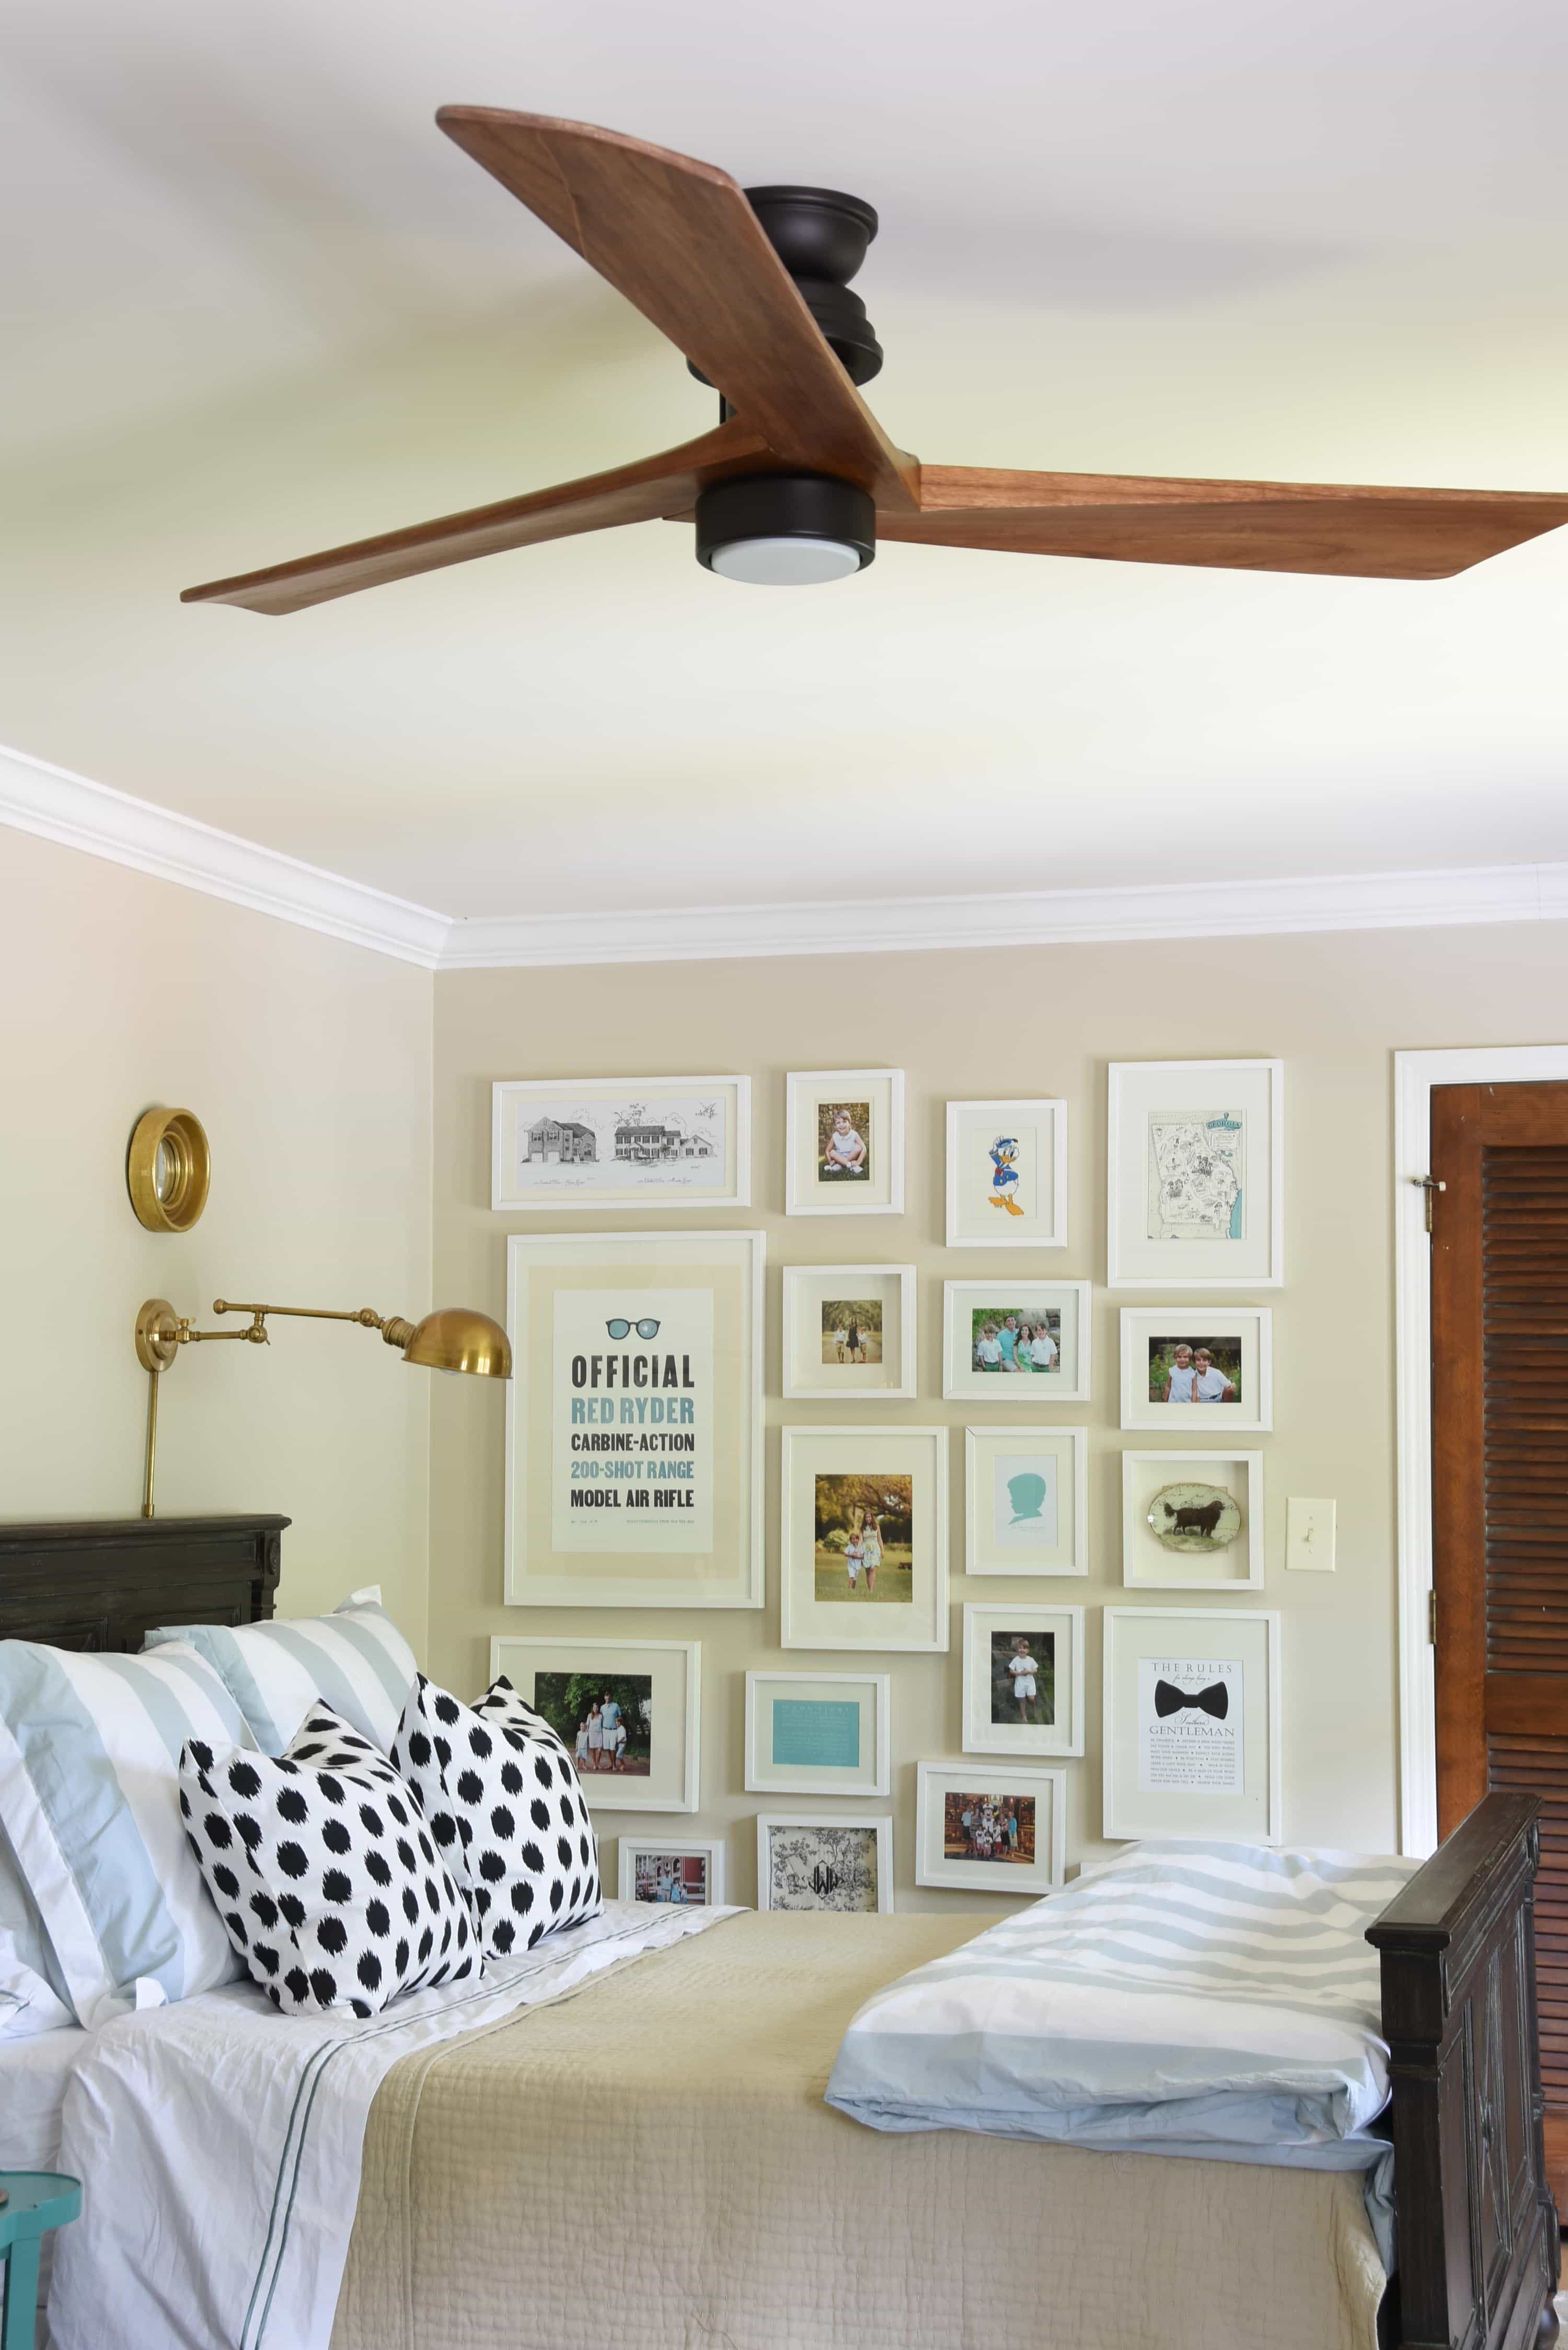 Boy room update the ceiling fan dixie delights but the cool breeze is just fantastic john loves that it has a remote control from which he control both the fan direction speed and light on a dimmer mozeypictures Gallery